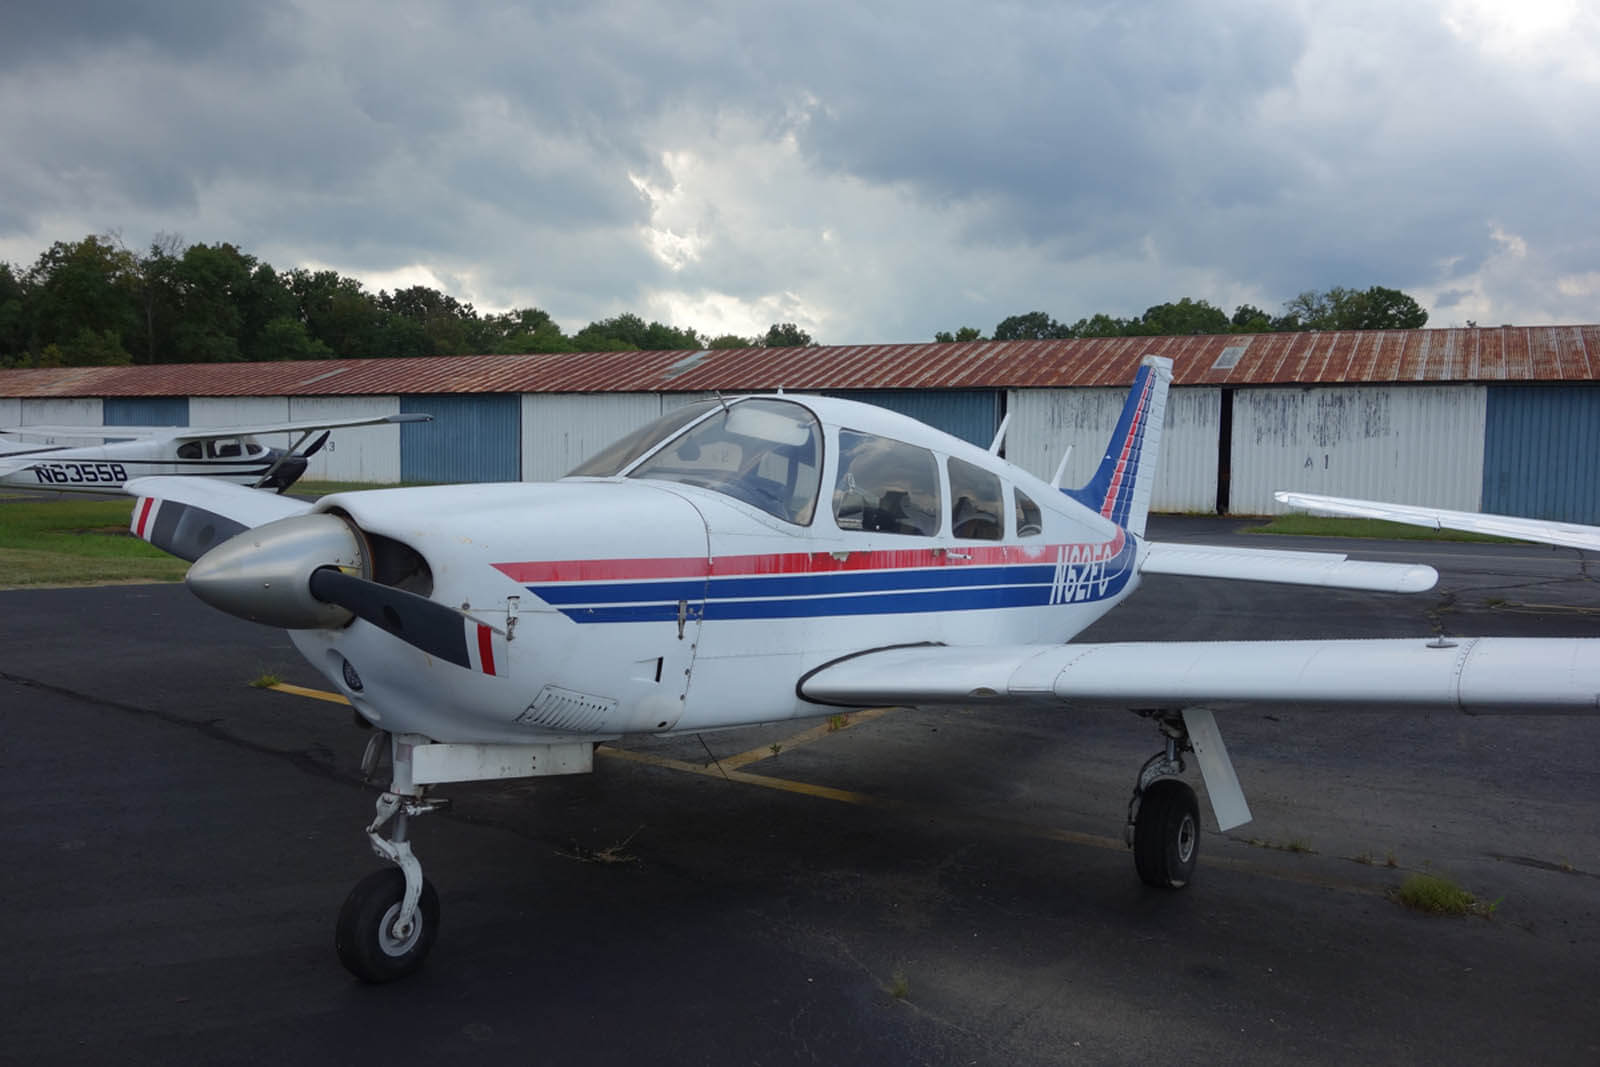 1977 Piper Arrow - FOR SALE AT PRINCETON AIRPORT ~ Contact Ken Nierenberg at 609-731-4628 for details